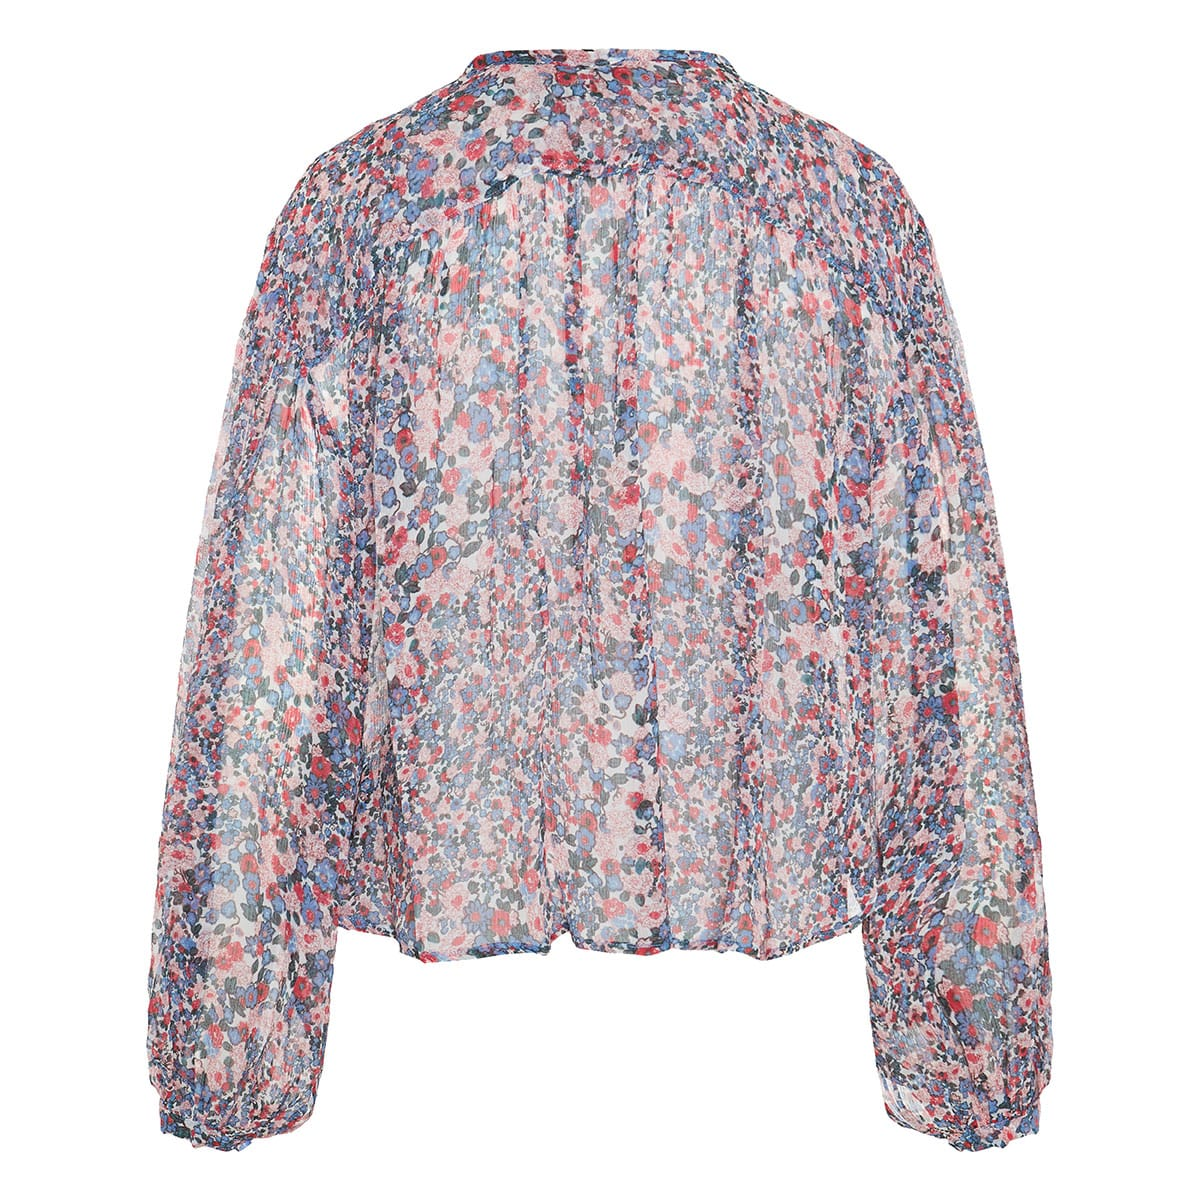 Orionea floral gathered blouse